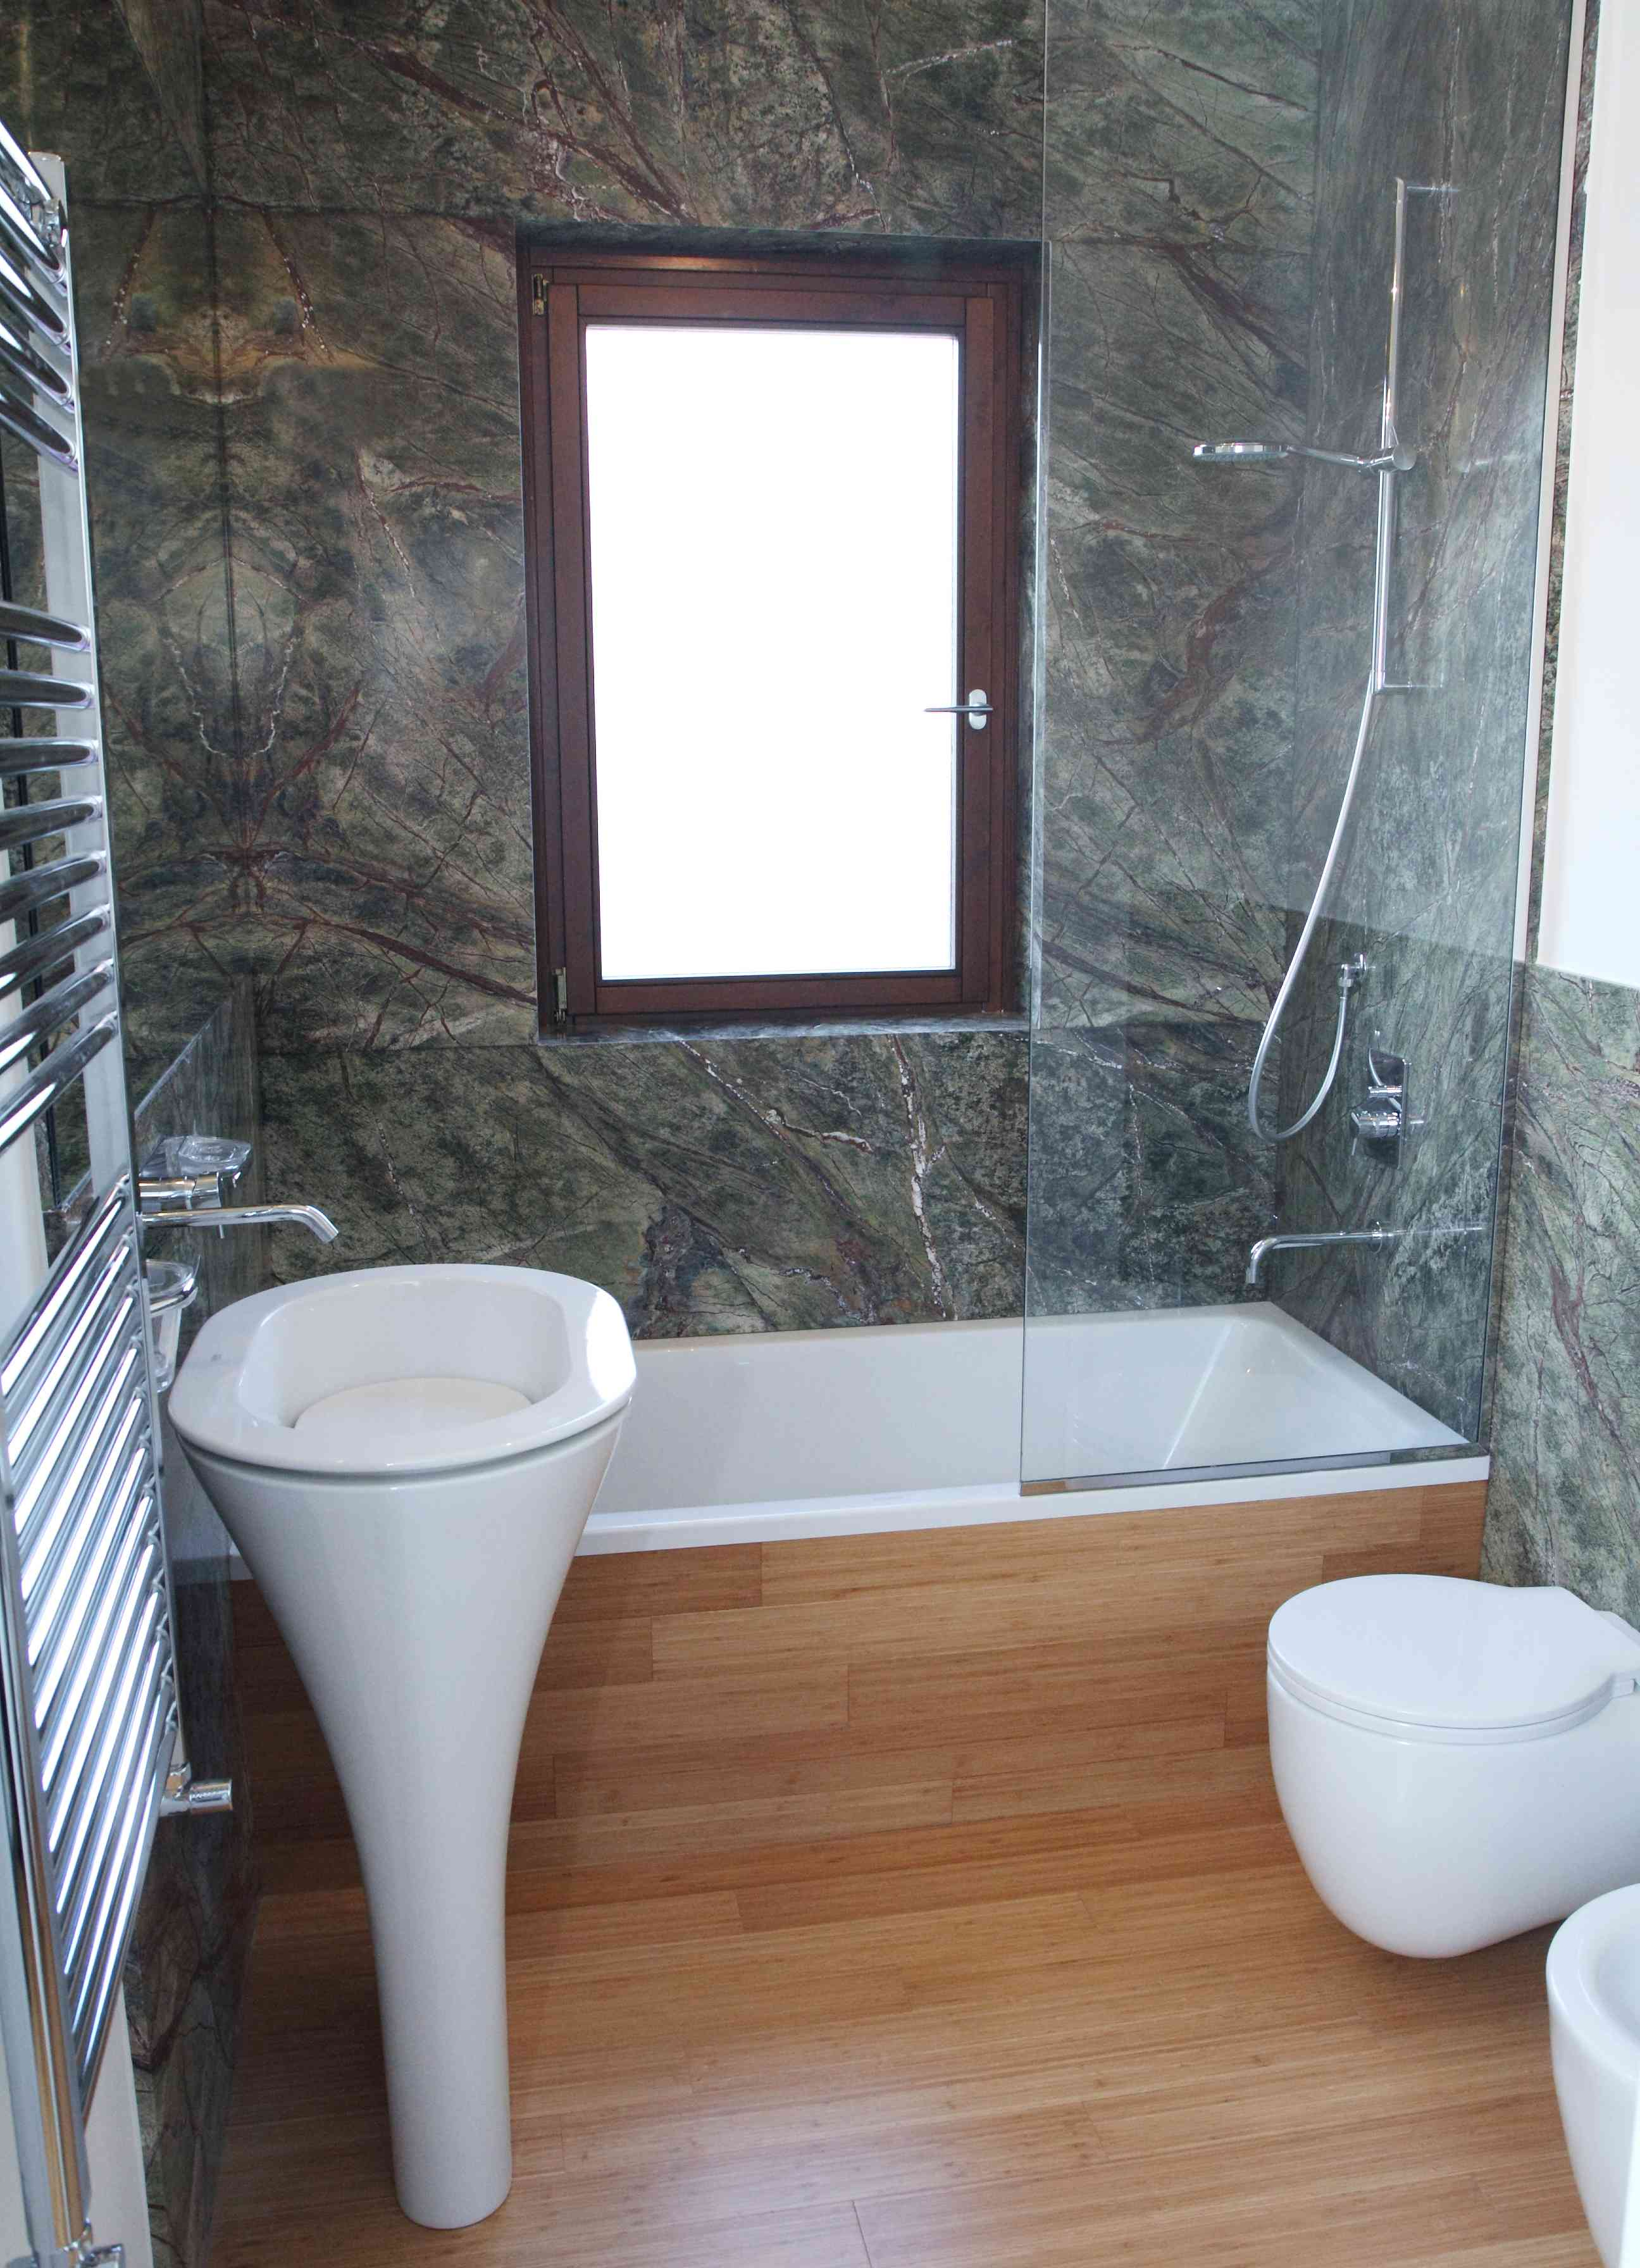 Indian Small Bathroom Designs Pictures New Bathroom: Small Bathroom Designs, India, Photos, Design Ideas